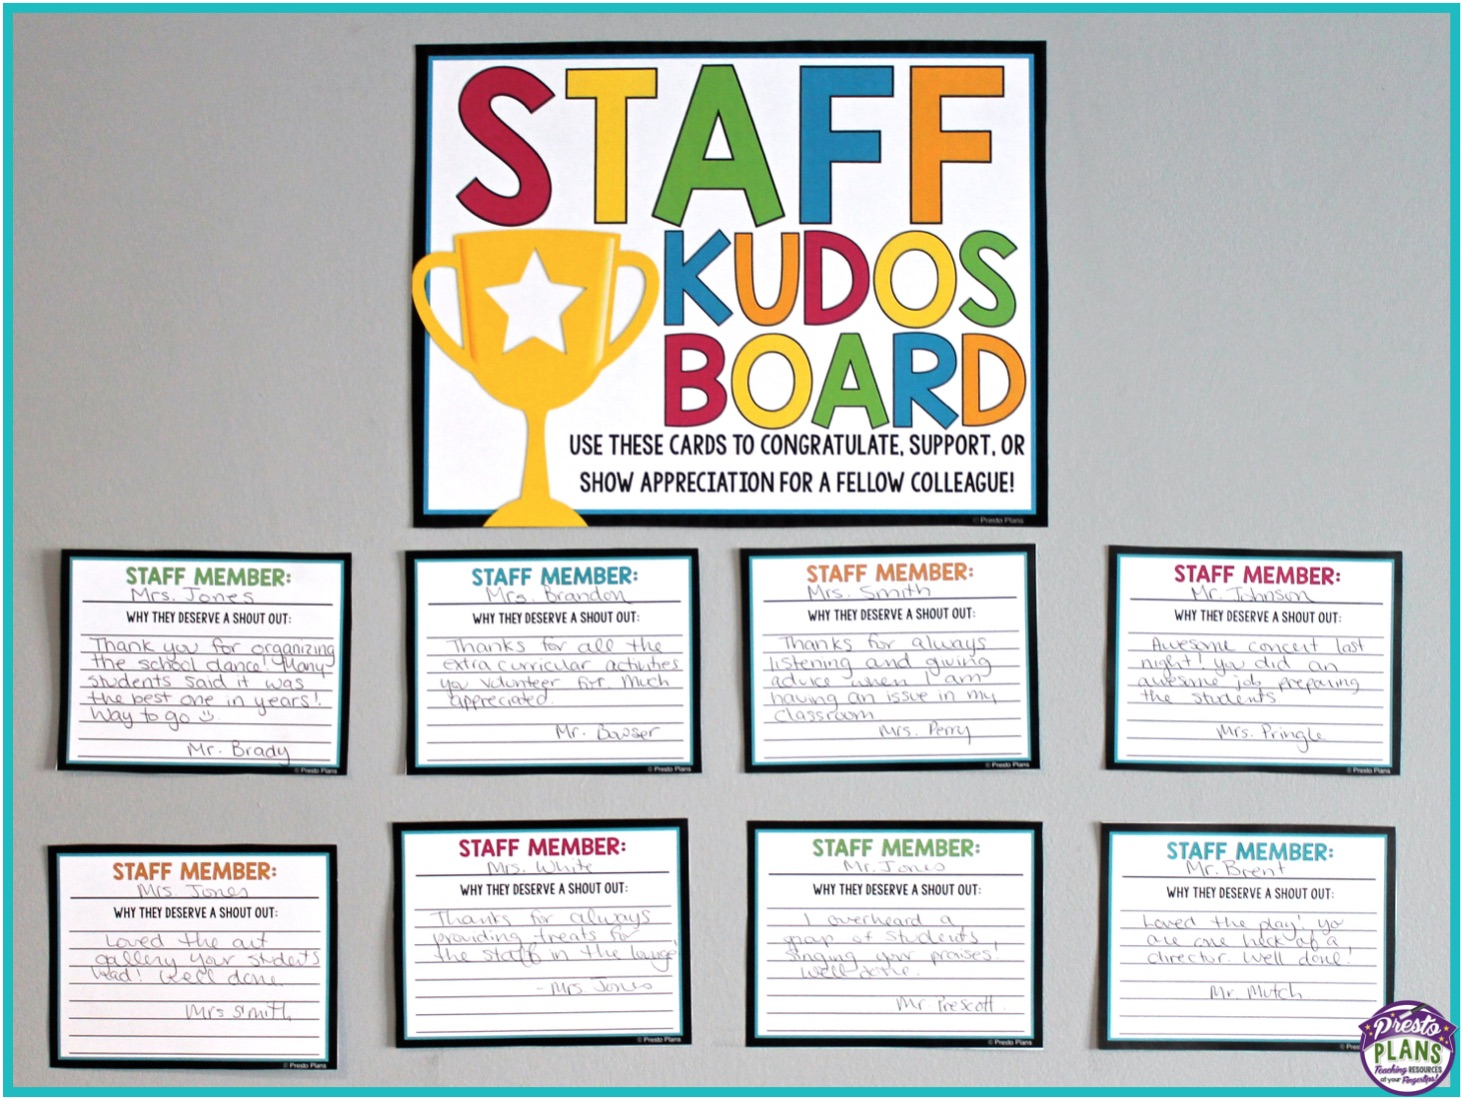 Here, we set up a staff kudos board where staff members can fill out cards to congratulate, support or show appreciation for their fellow colleagues.